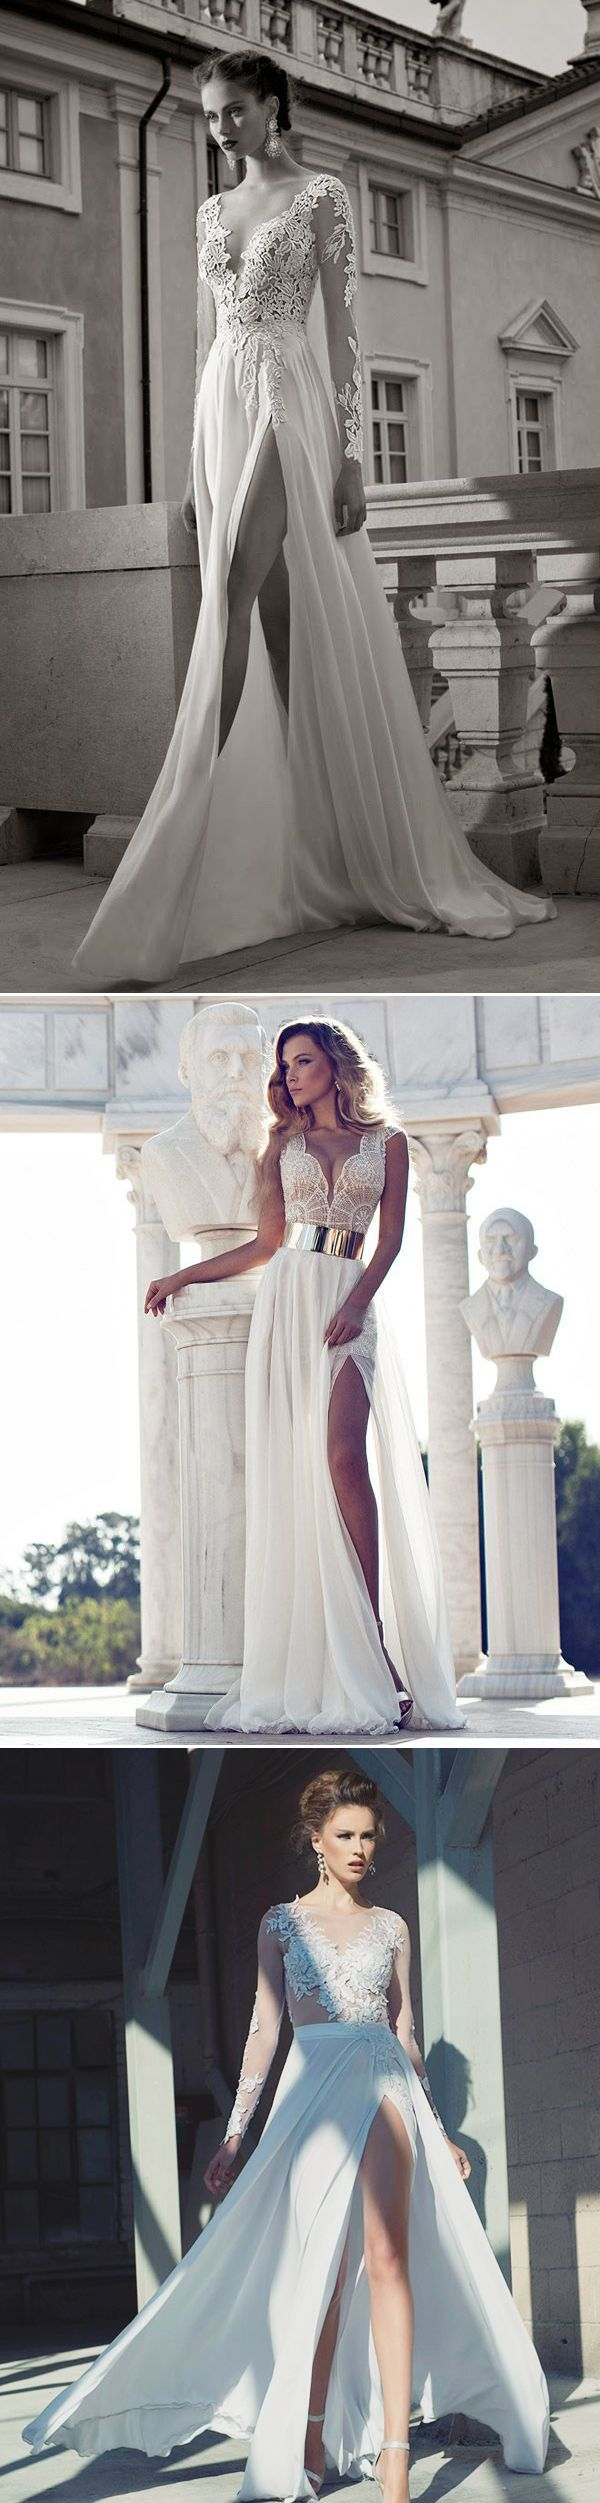 Sexy & Sophisticated High Slit Wedding Dresses 2016 - Deer Pearl Flowers